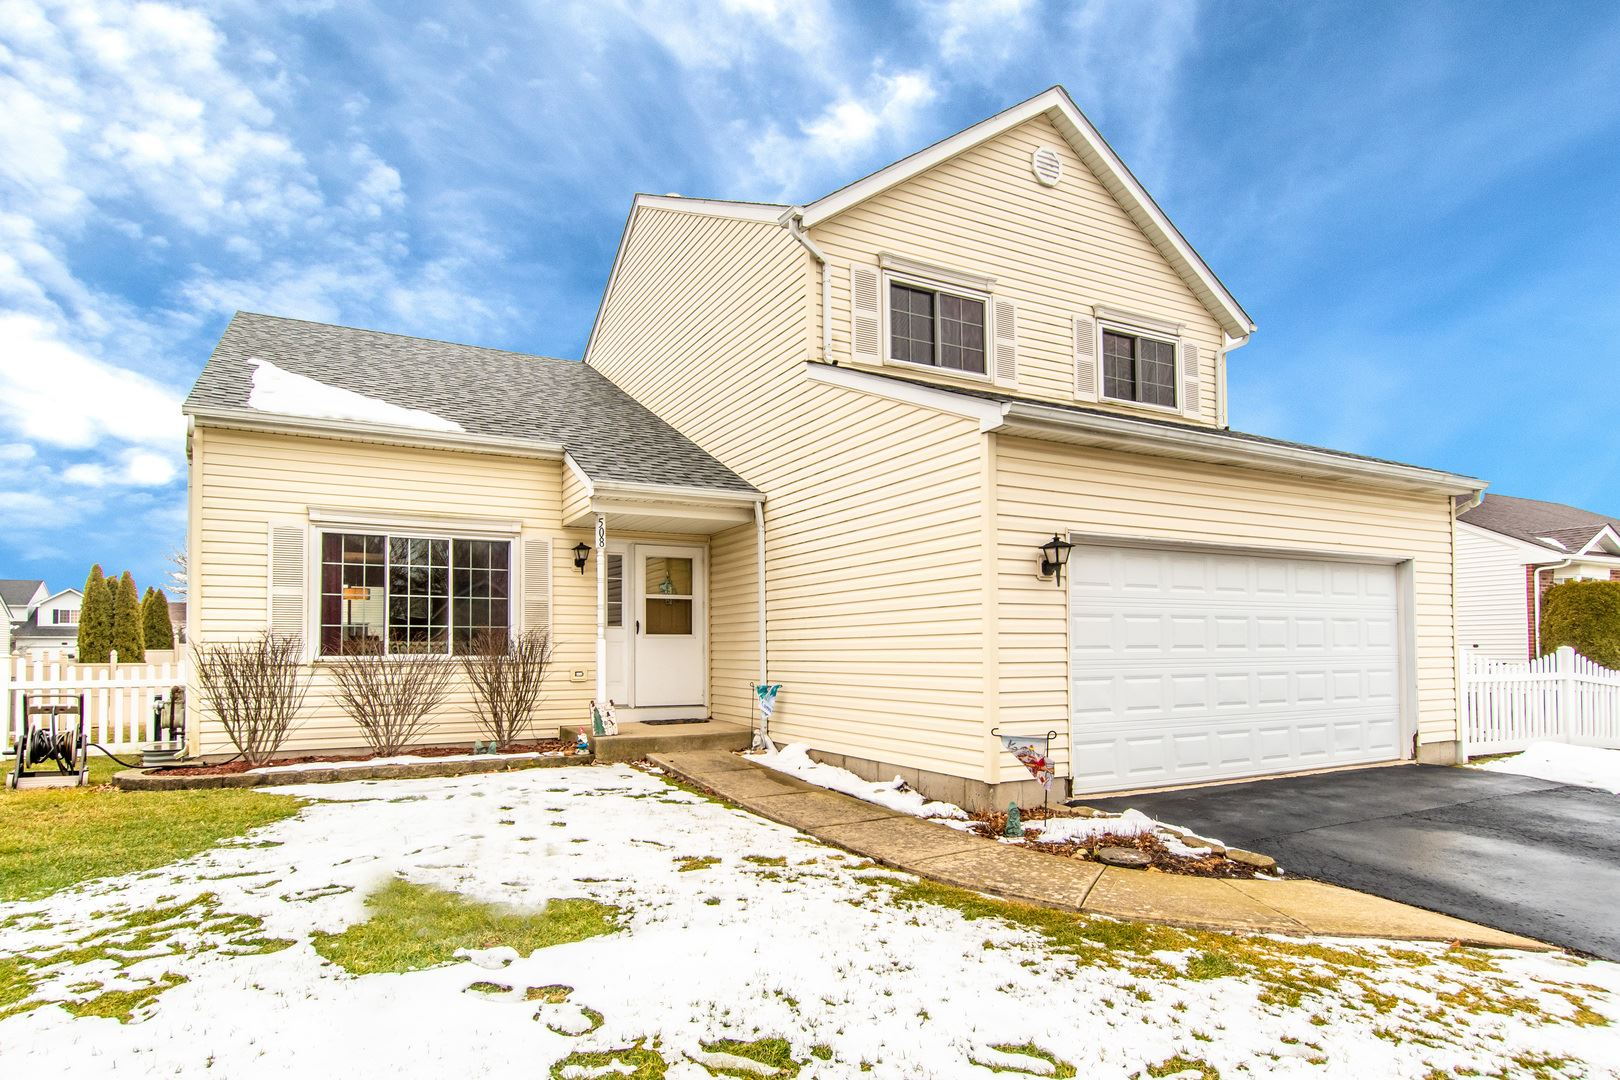 Photo for 508 Pheasant Chase Drive, Bolingbrook, IL 60490 (MLS # 10970513)